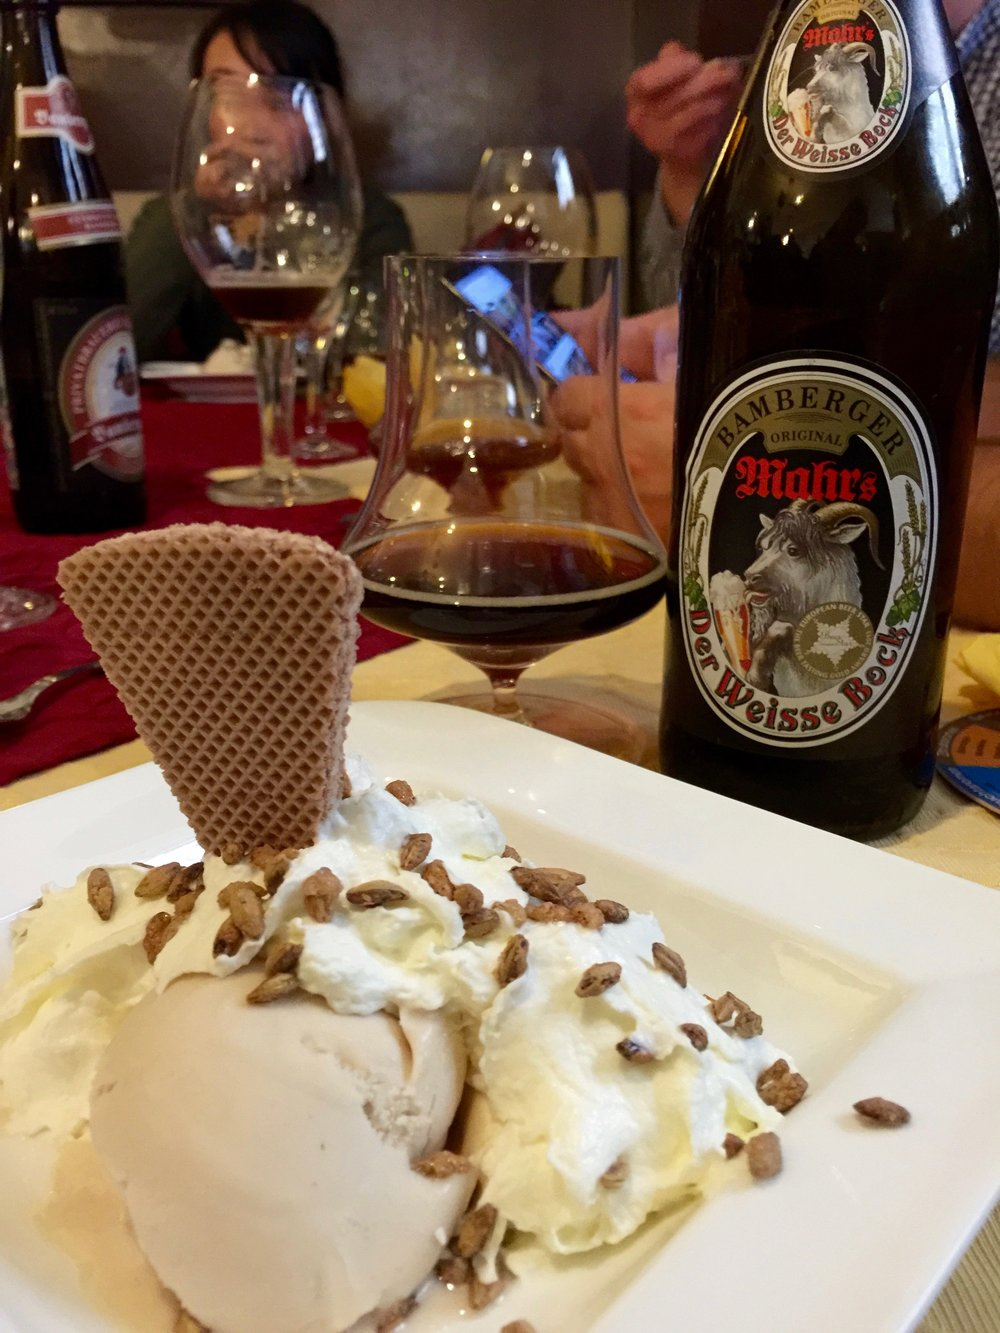 GER_Bamberg_Ice Cream and Beer.jpg